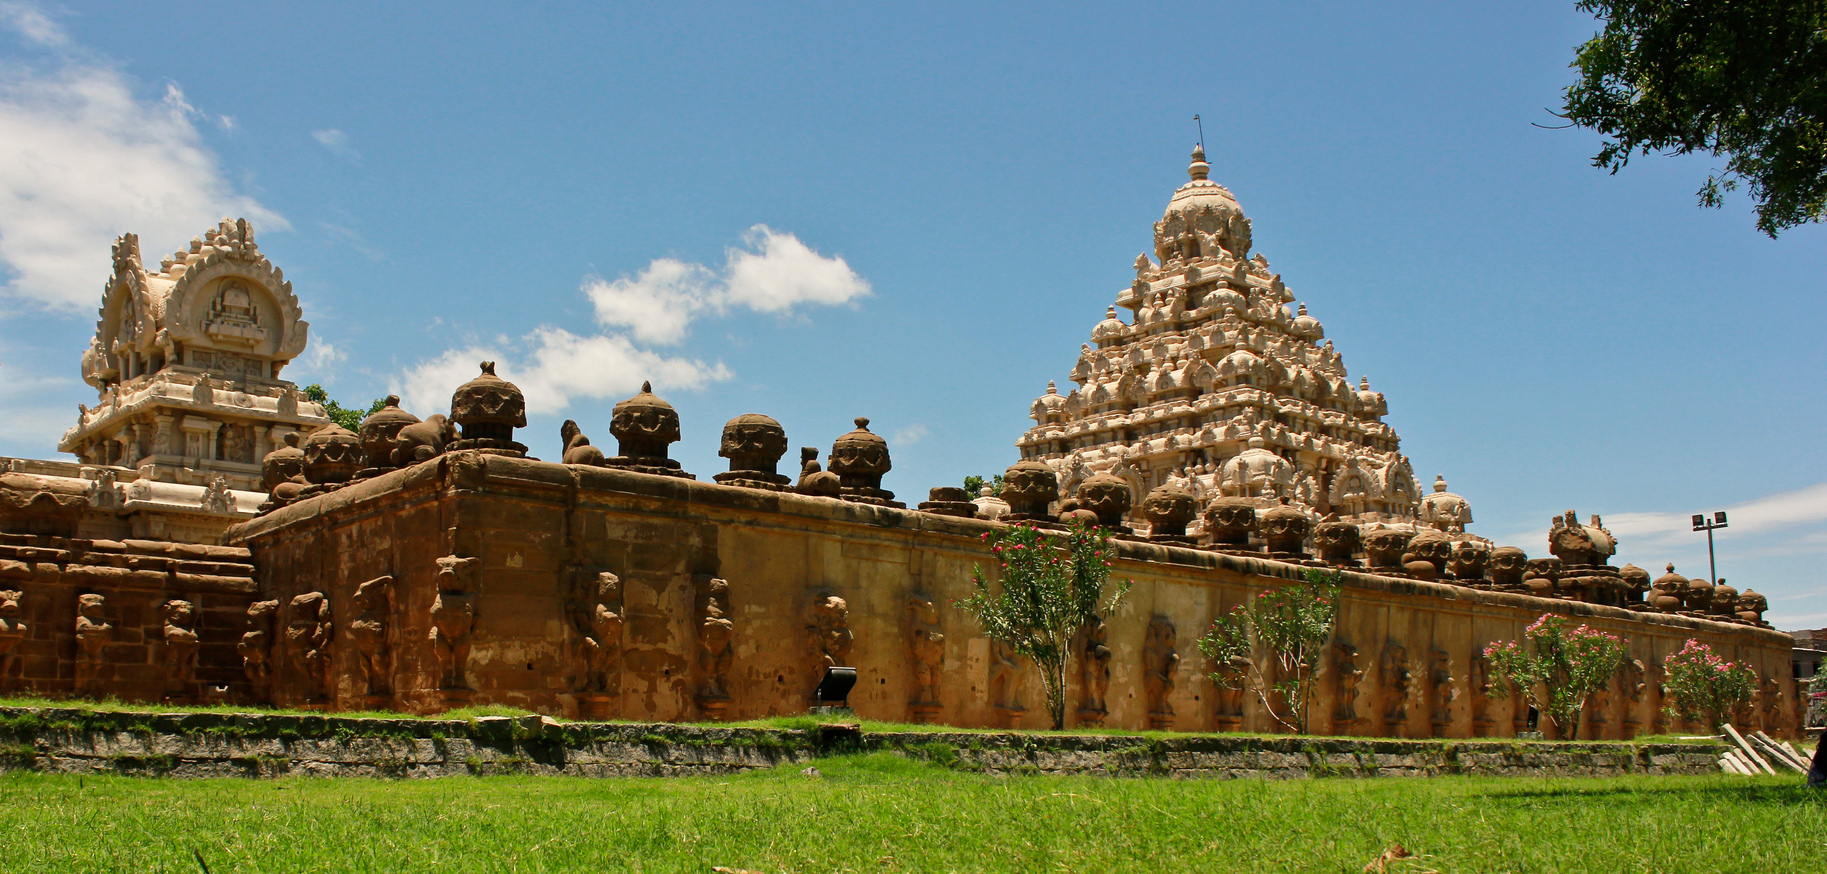 Kanchipuram India  City pictures : ... Kailasanathar temple is the oldest structure in Kanchipuram, TamilNadu